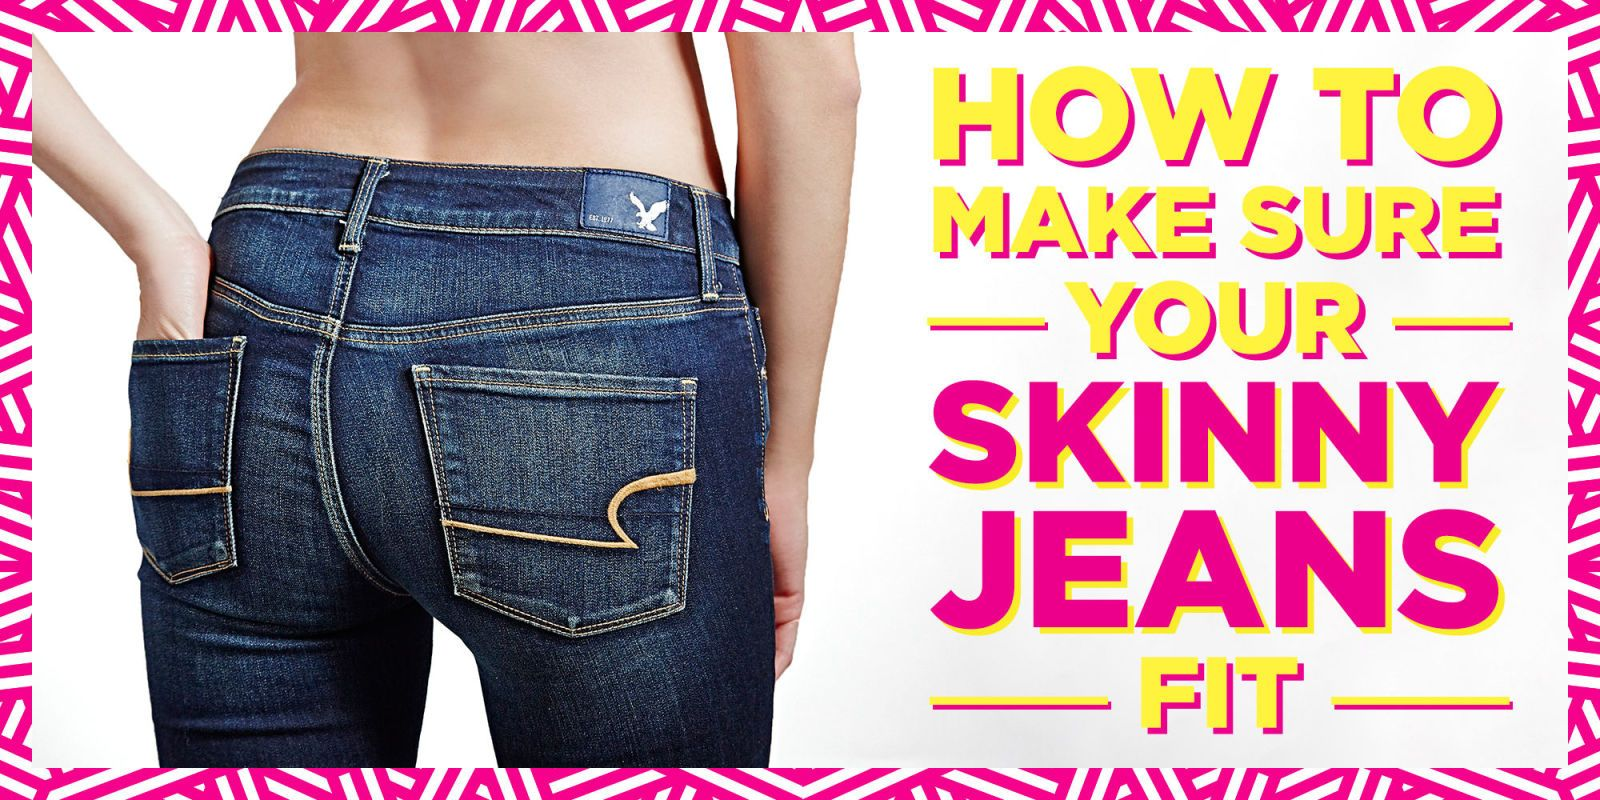 How do flabby girls squeeze into tight jeans?